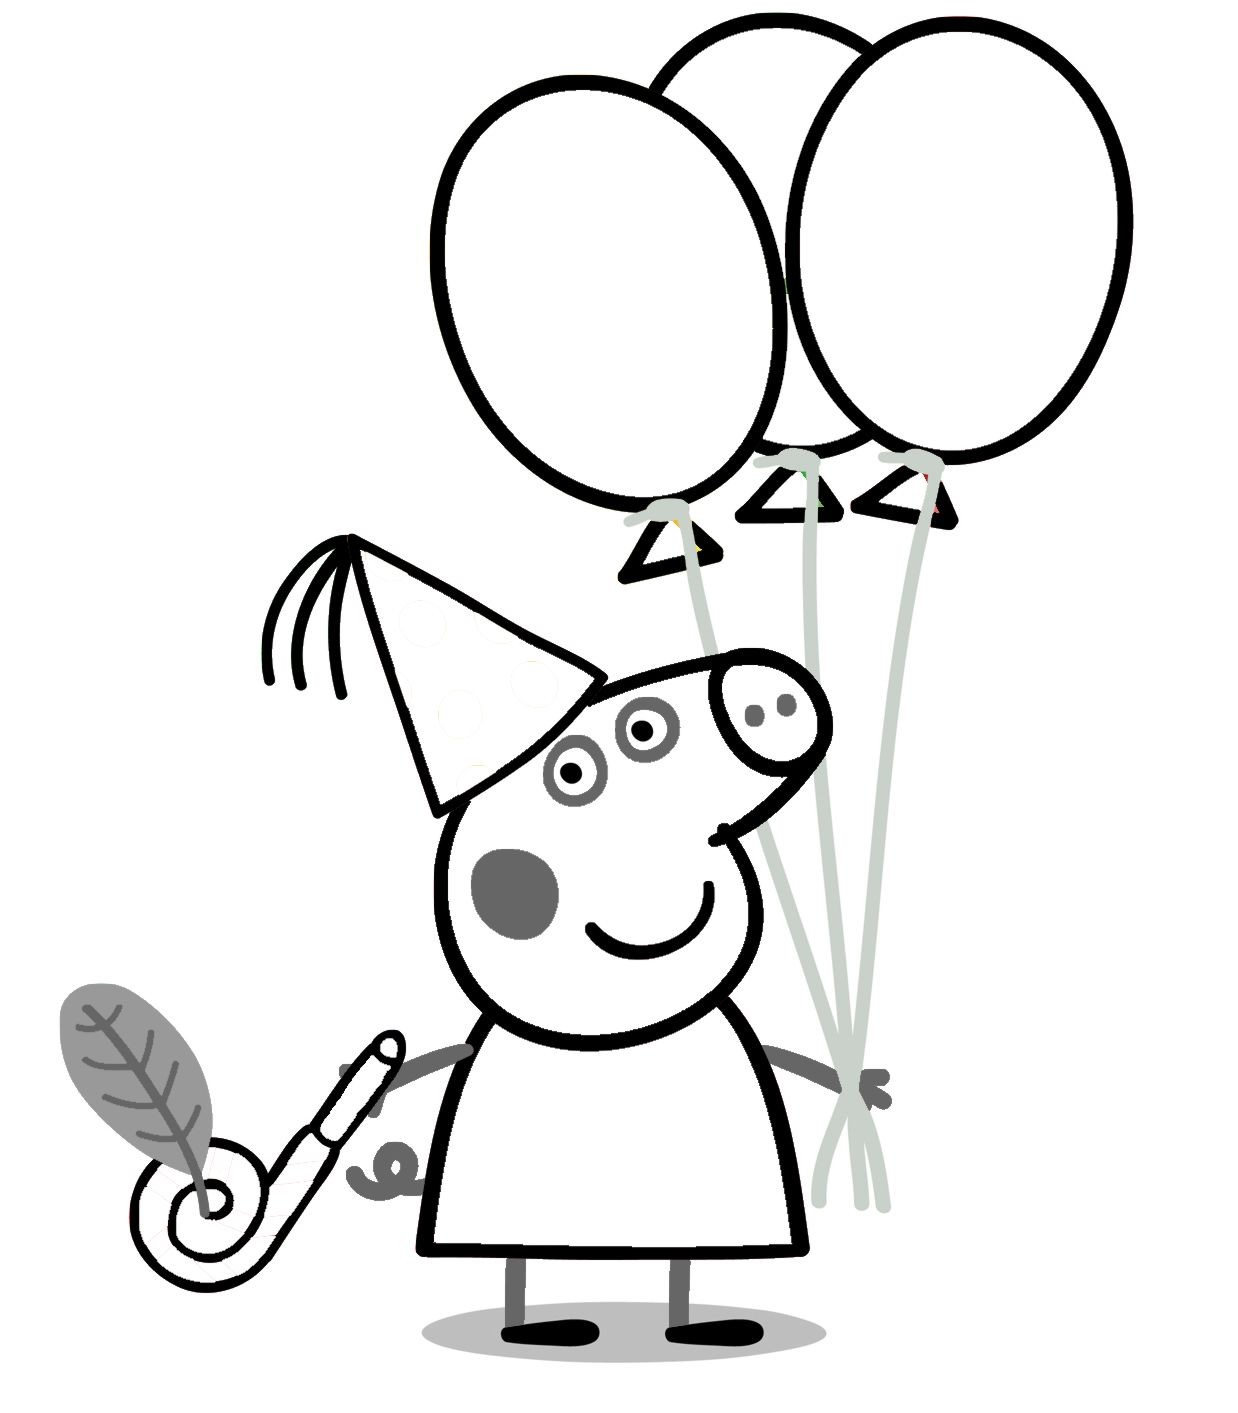 1238x1413 Coloring Pages Online Peppa Pig Copy Peppa Pig Coloring Pages